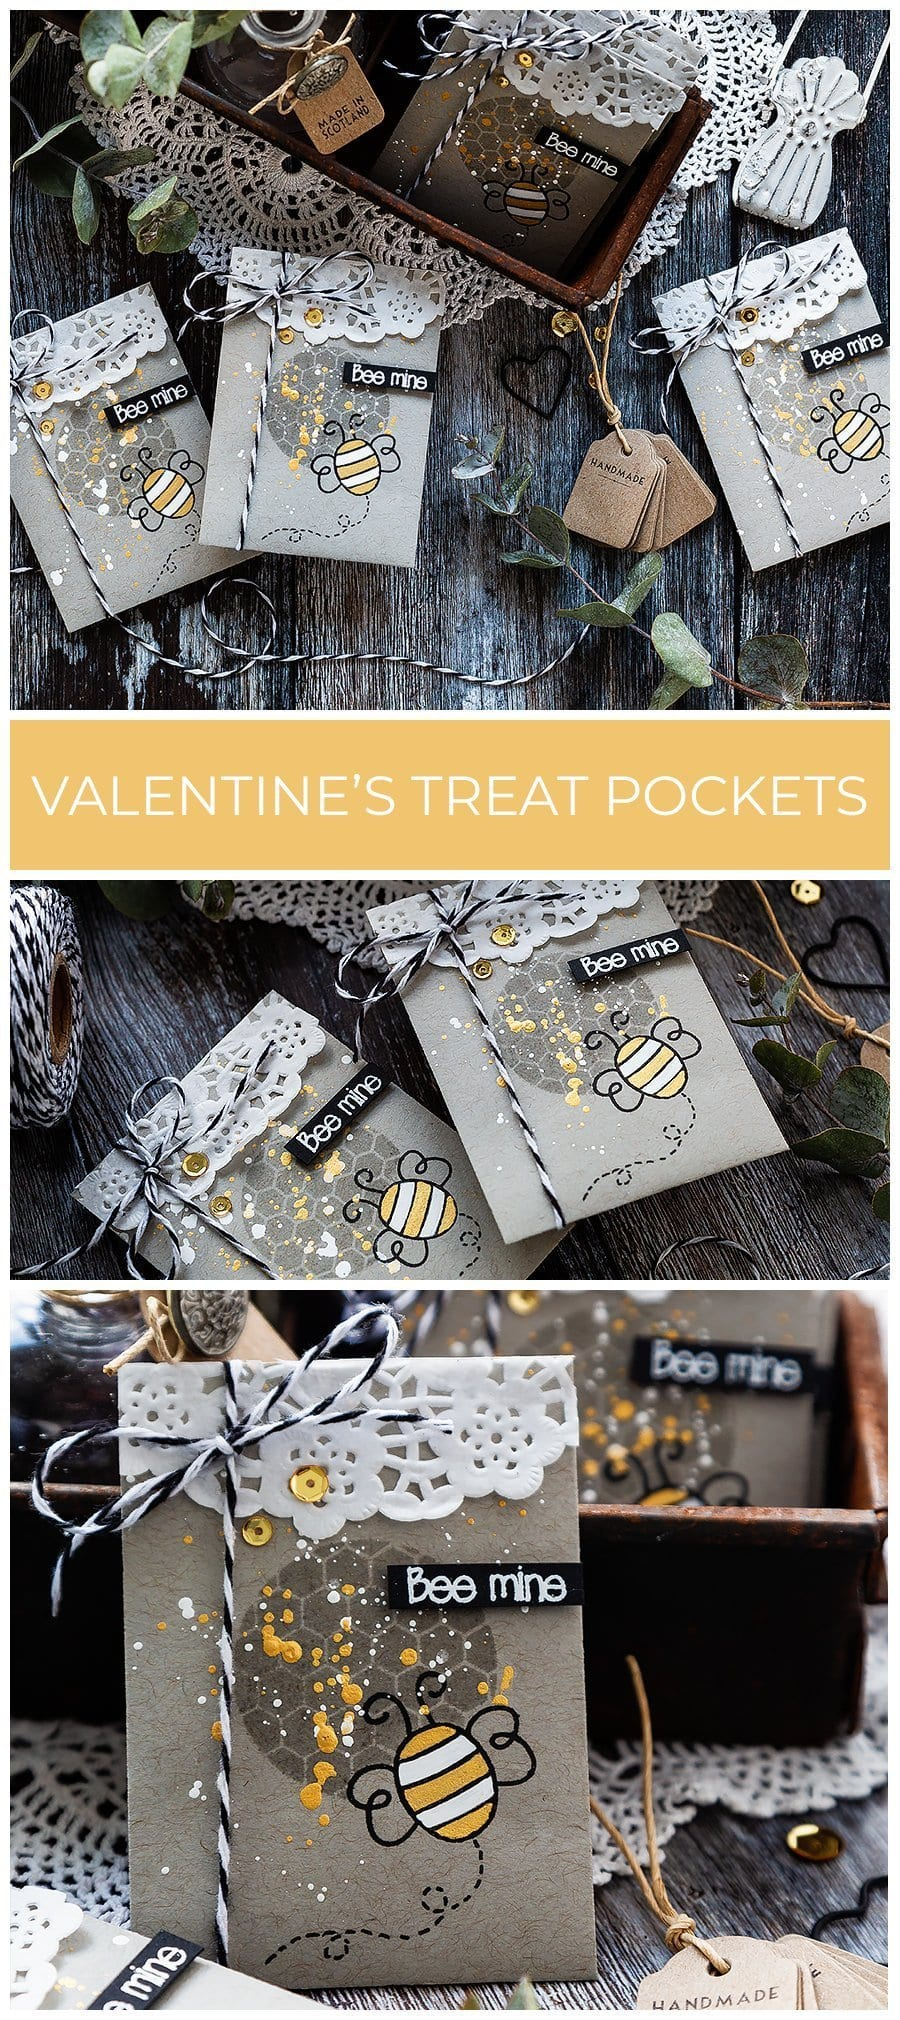 Video - cute, quick, handmade Valentine's treat pockets by Debby Hughes using supplies from Simon Says Stamp. Find out more here: https://limedoodledesign.com/2019/01/video-quick-cute-valentines-treat-pockets-sss-card-kits/